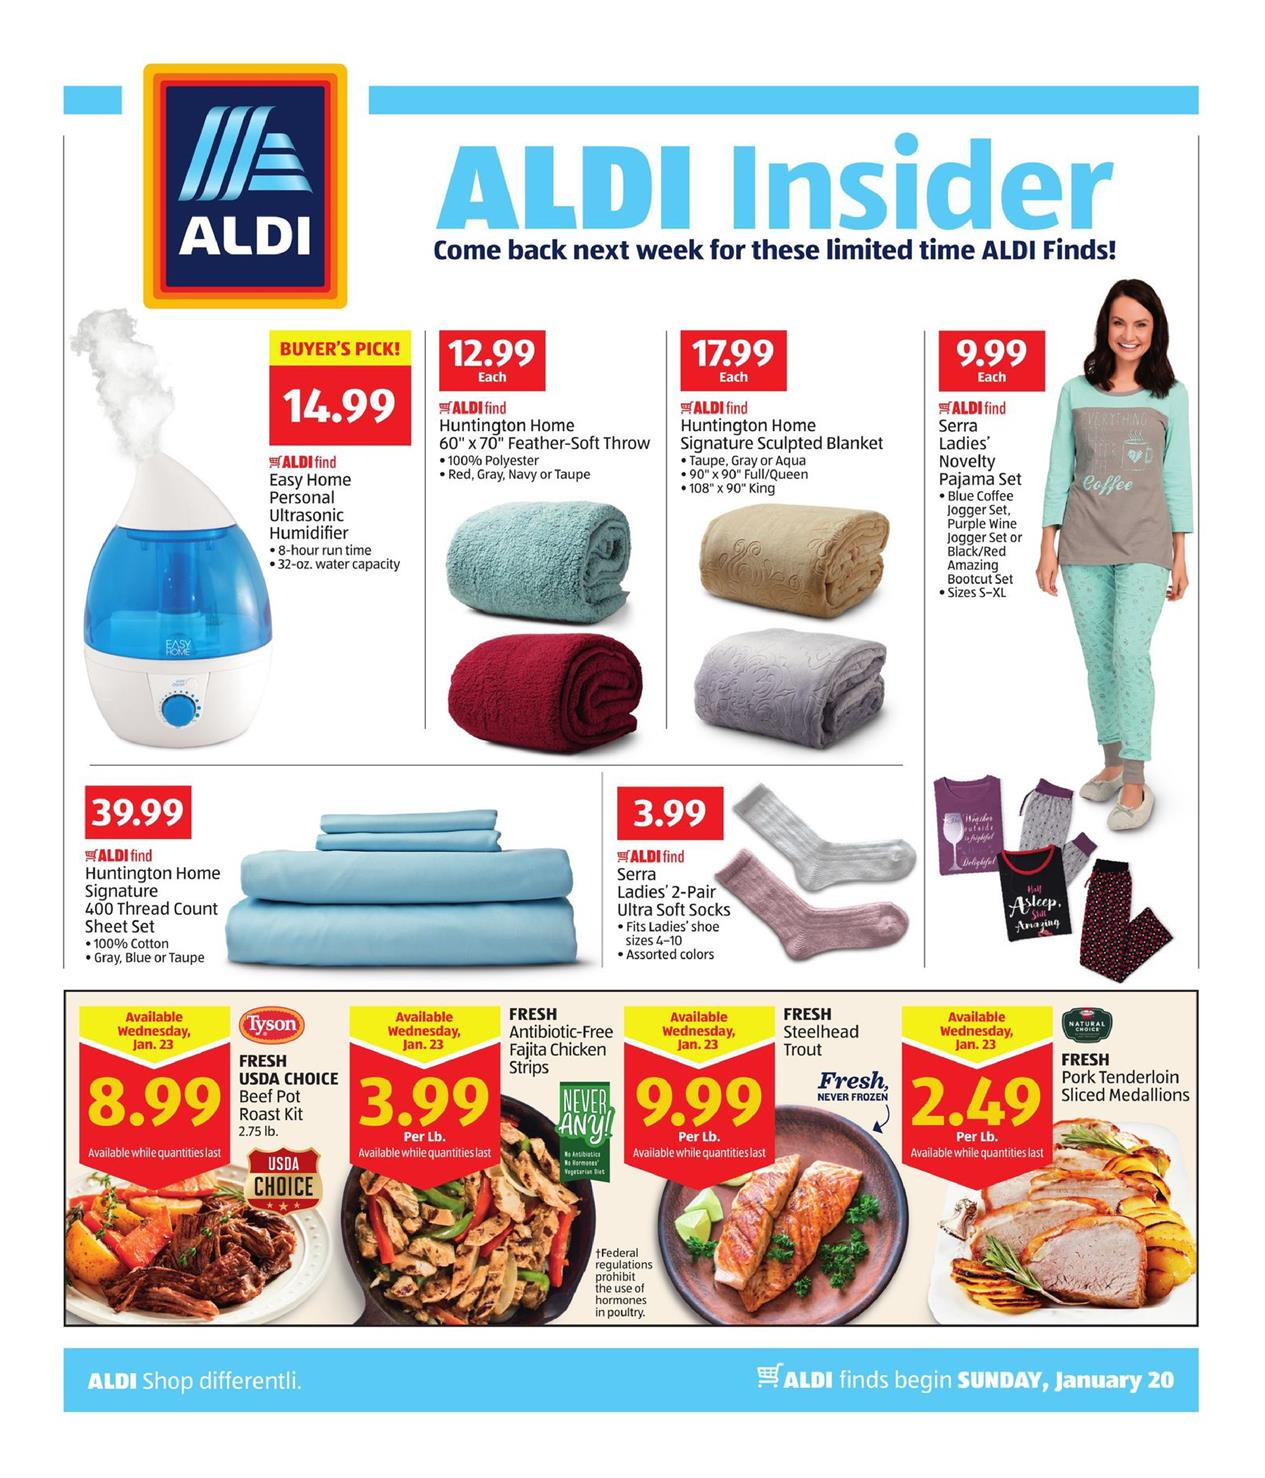 aldi insider ad jan 20 26 2019. Black Bedroom Furniture Sets. Home Design Ideas